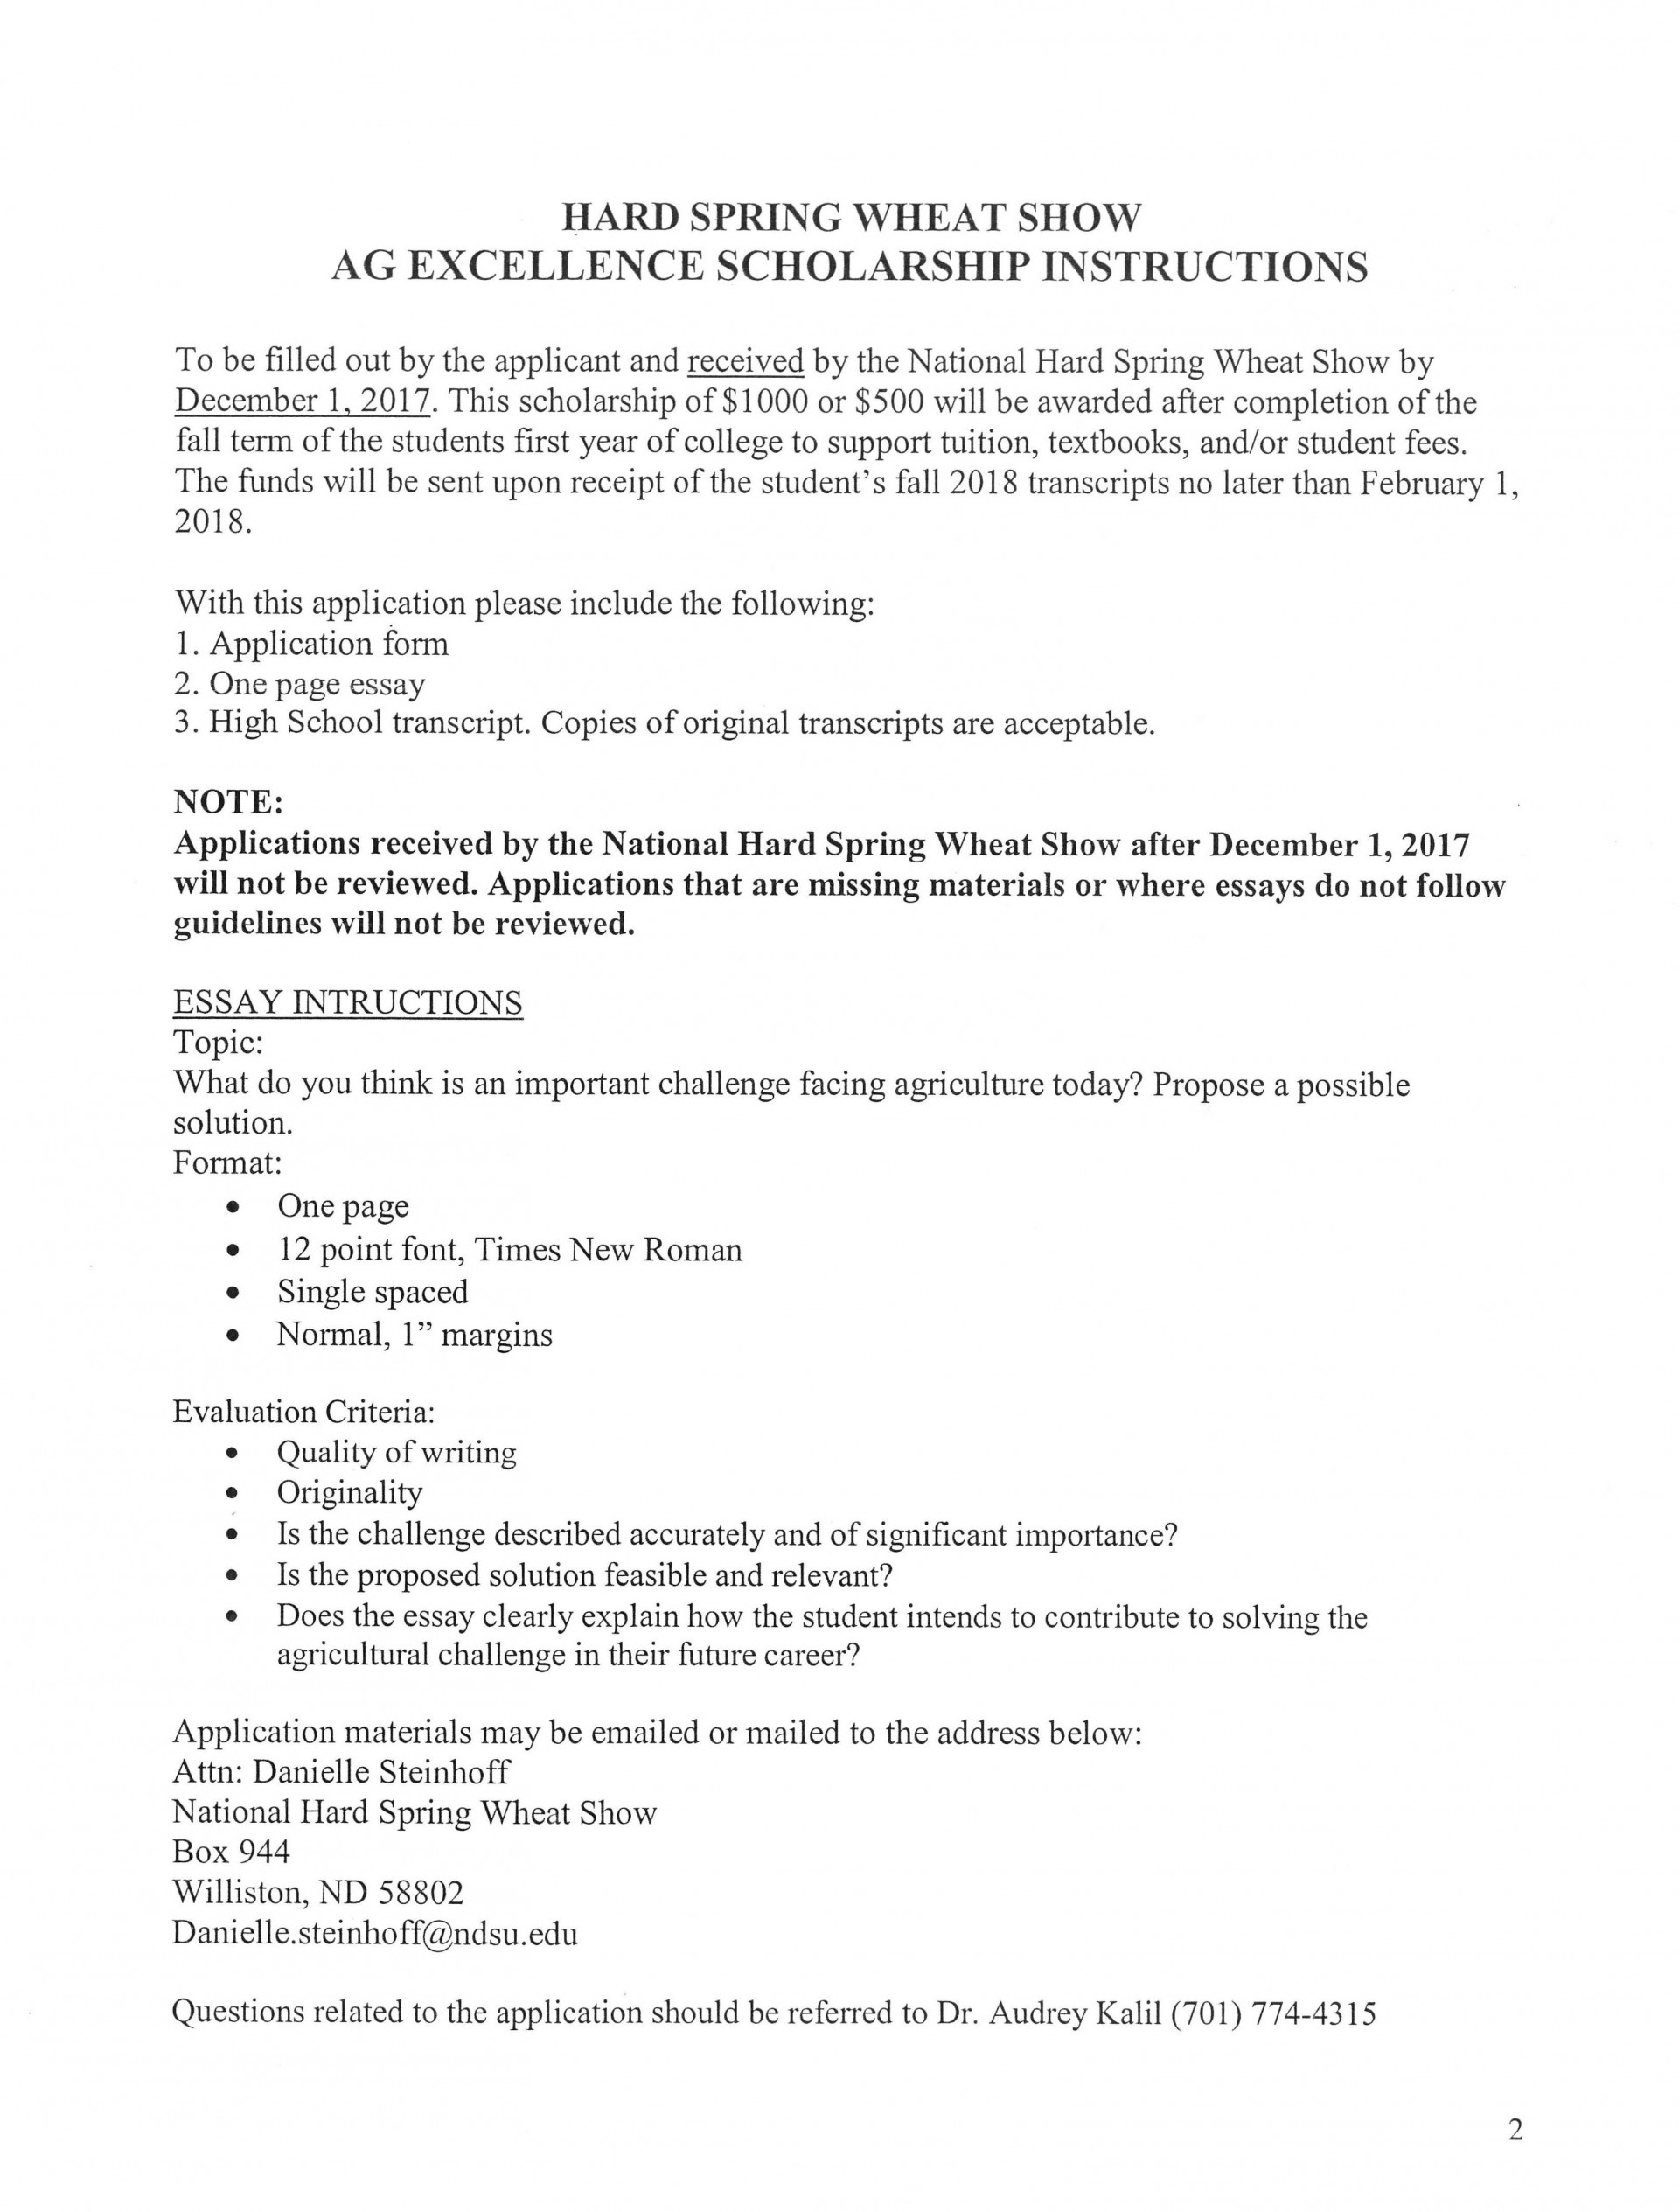 015 Short Essay Scholarships Page 2 Amazing College Easy 1920